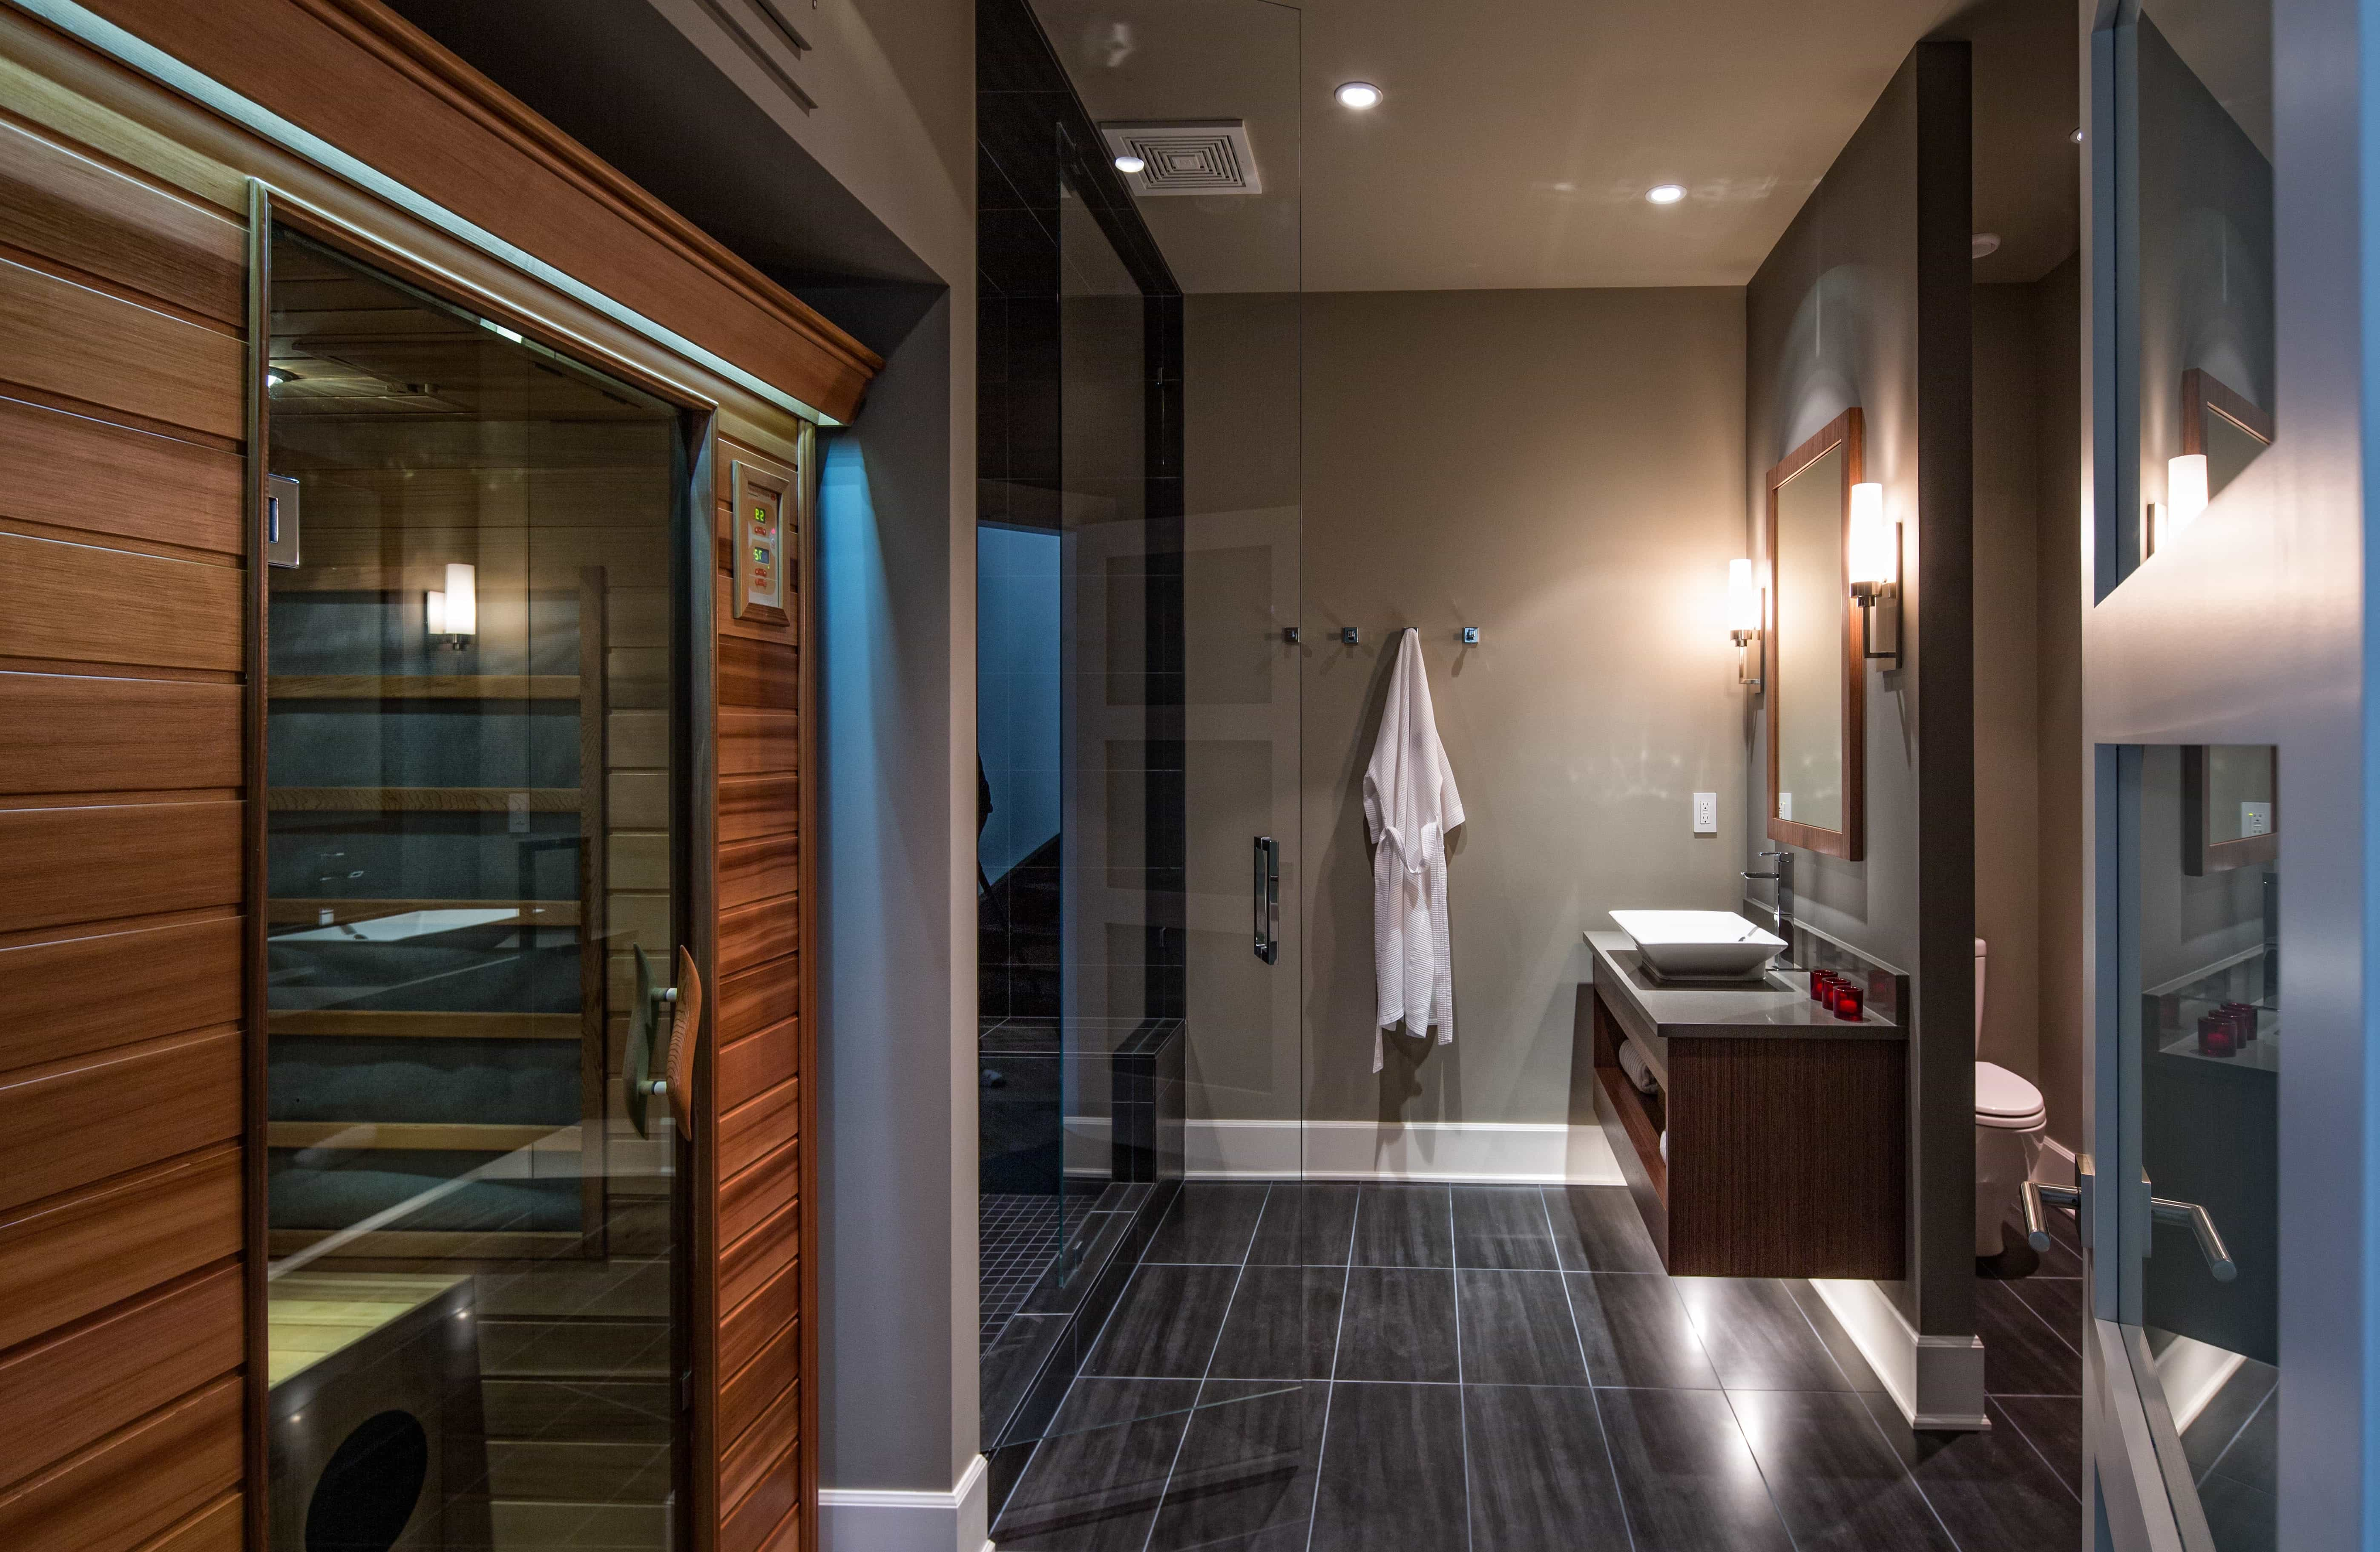 Masculine Contemporary Spa Bath And Sauna With Black Tile Floor And Wall Color (View 2 of 10)